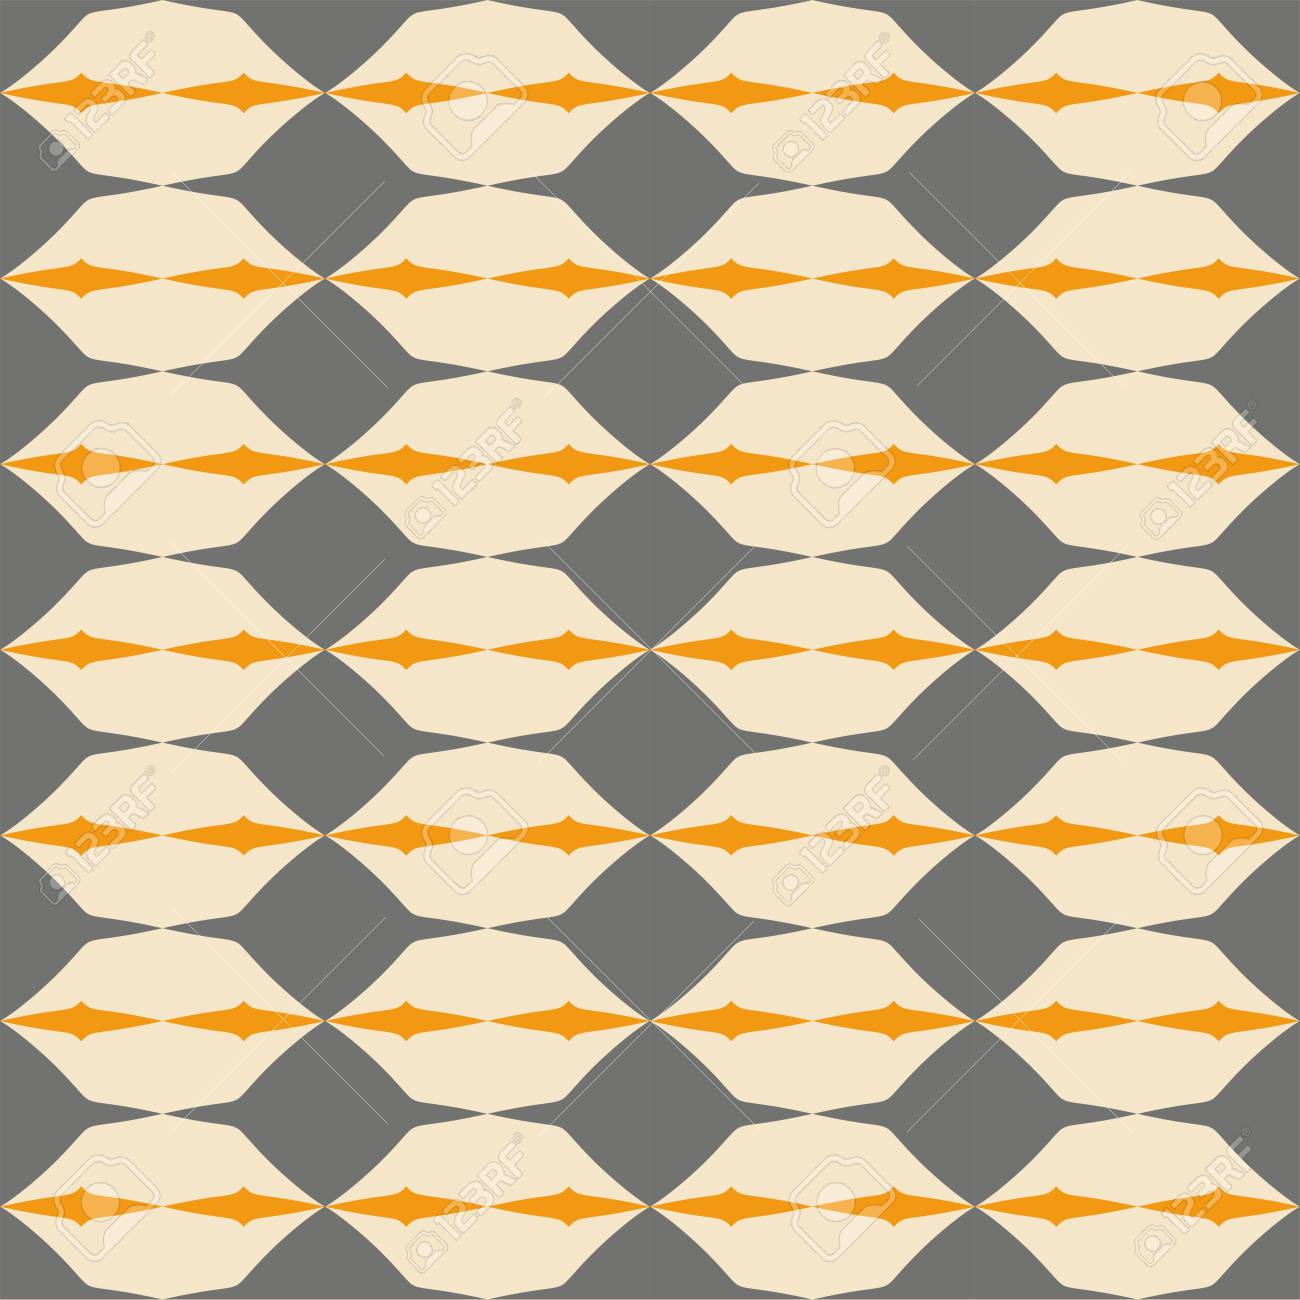 97515608 tile grey black and orange vector pattern with geometric decoration background wallpaper